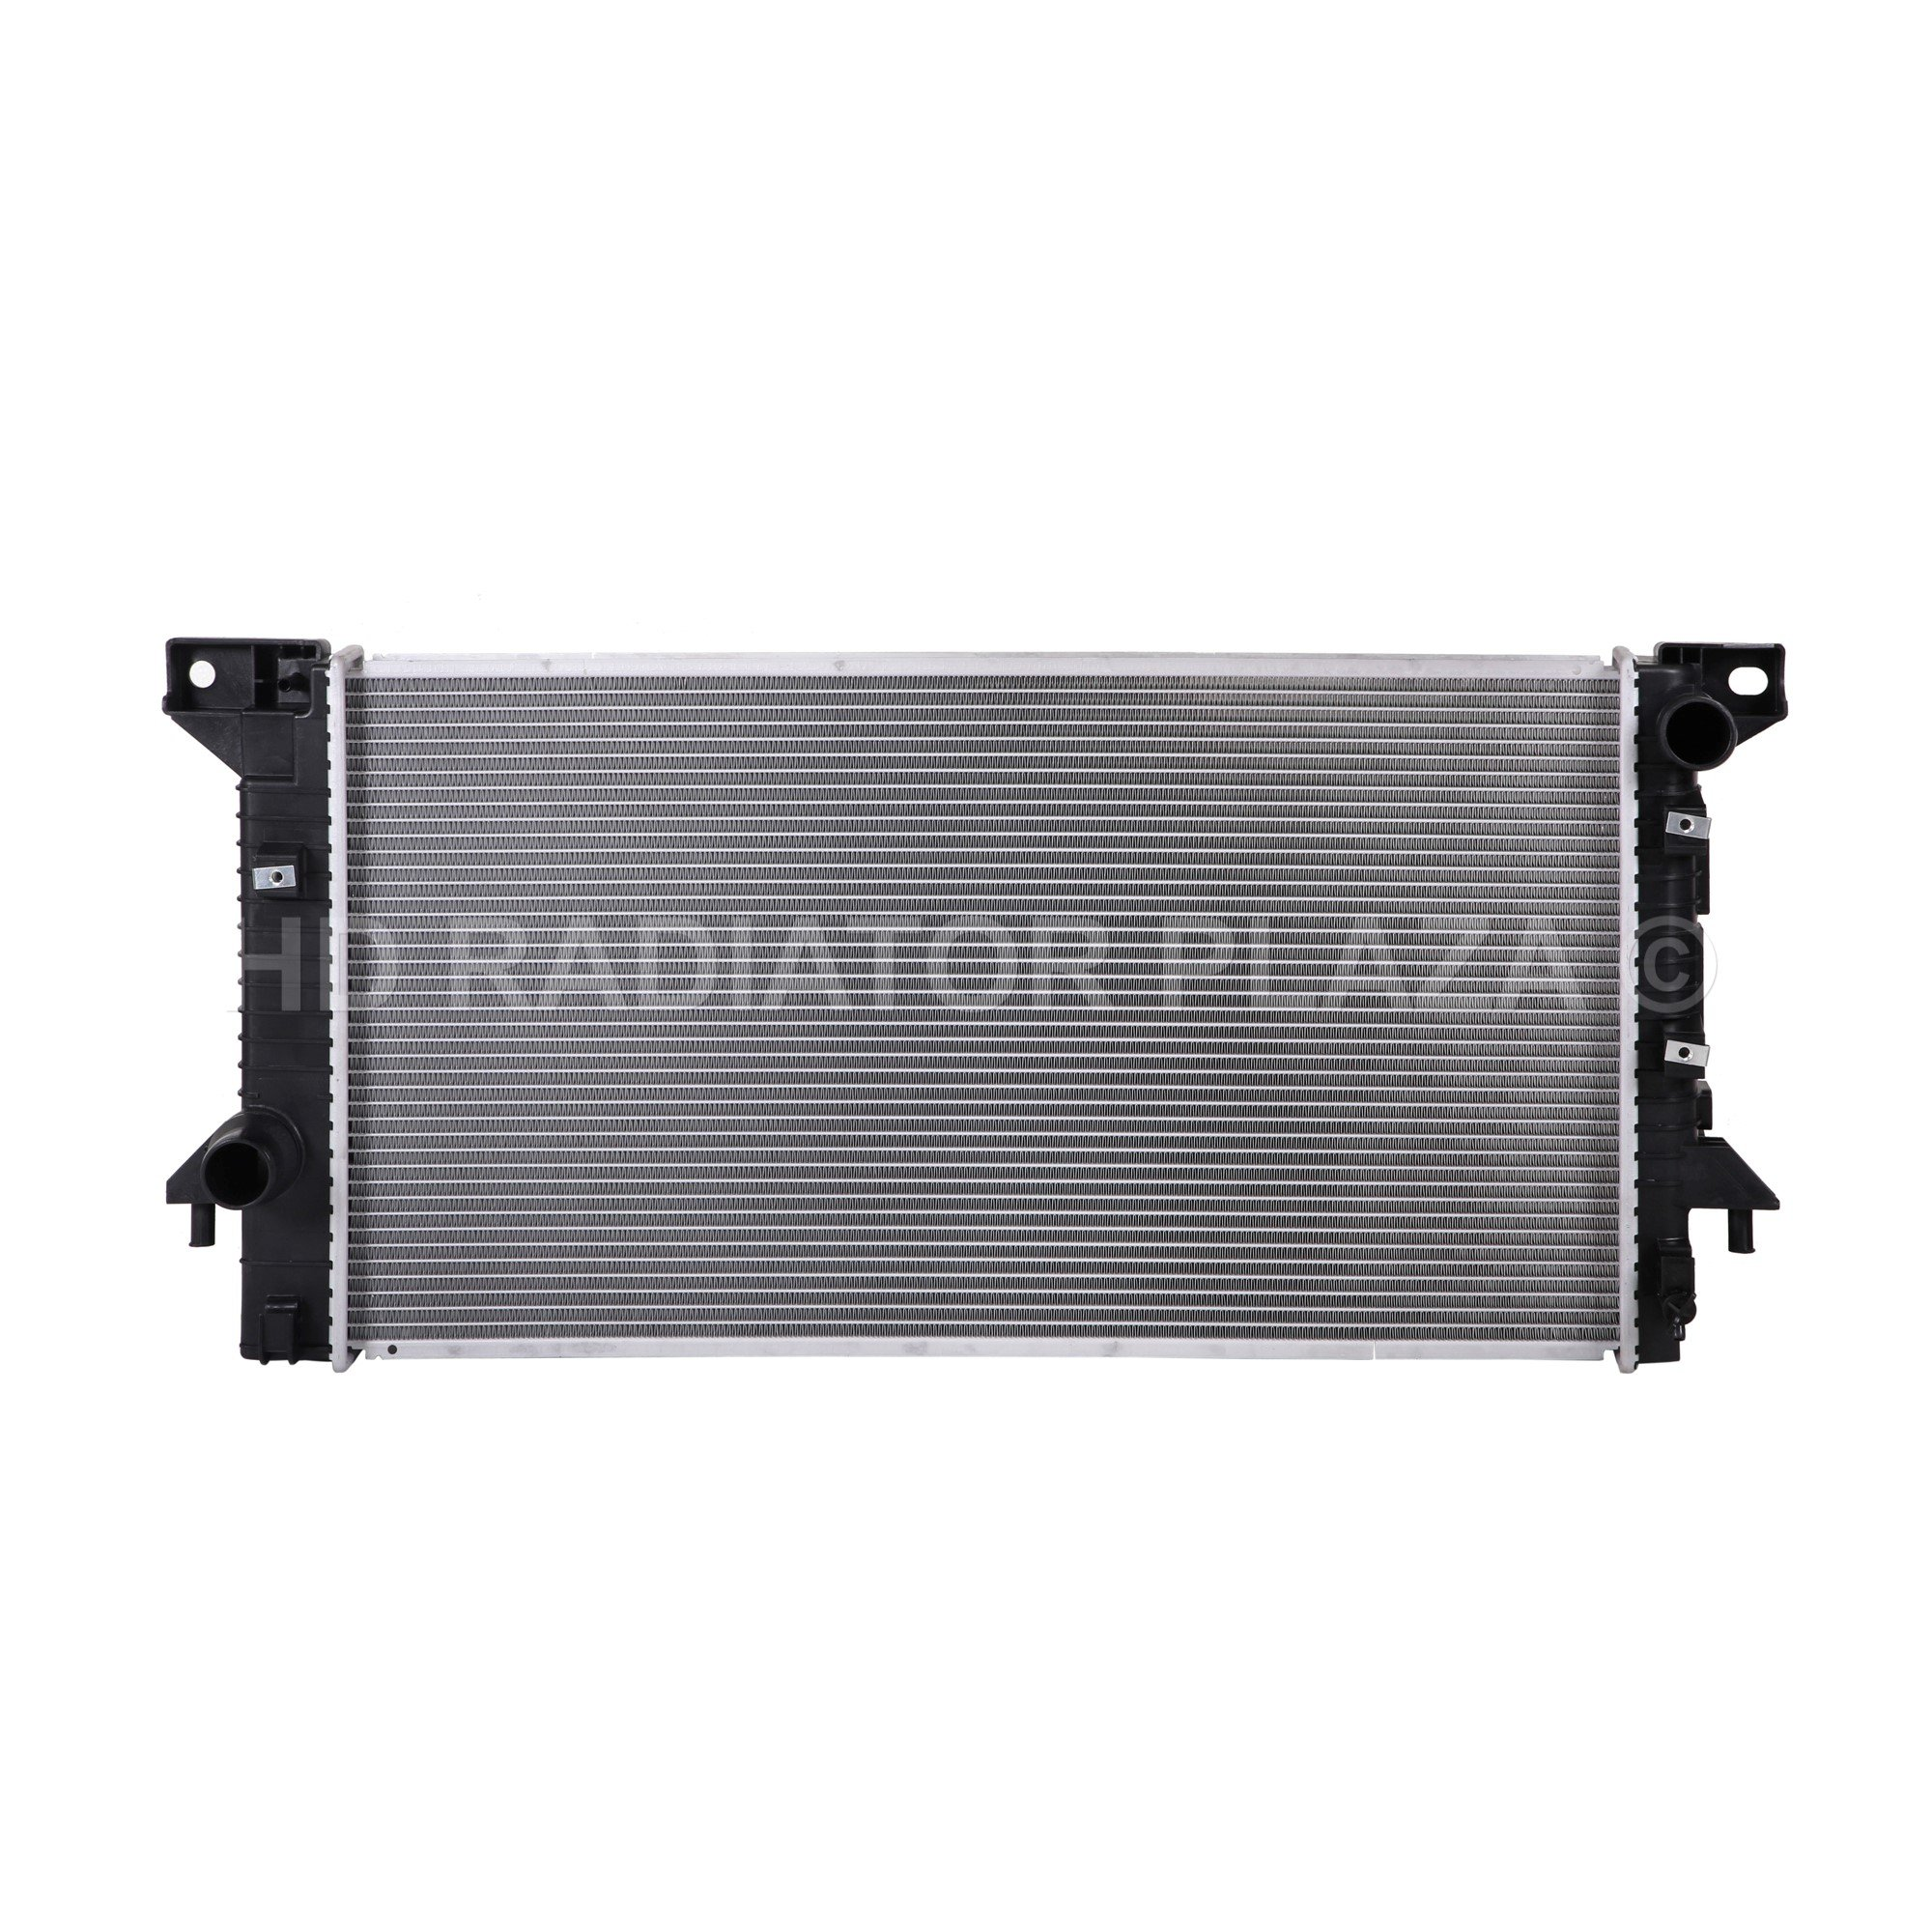 Radiator for 07-08 Ford Expedition, Lincoln Navigator